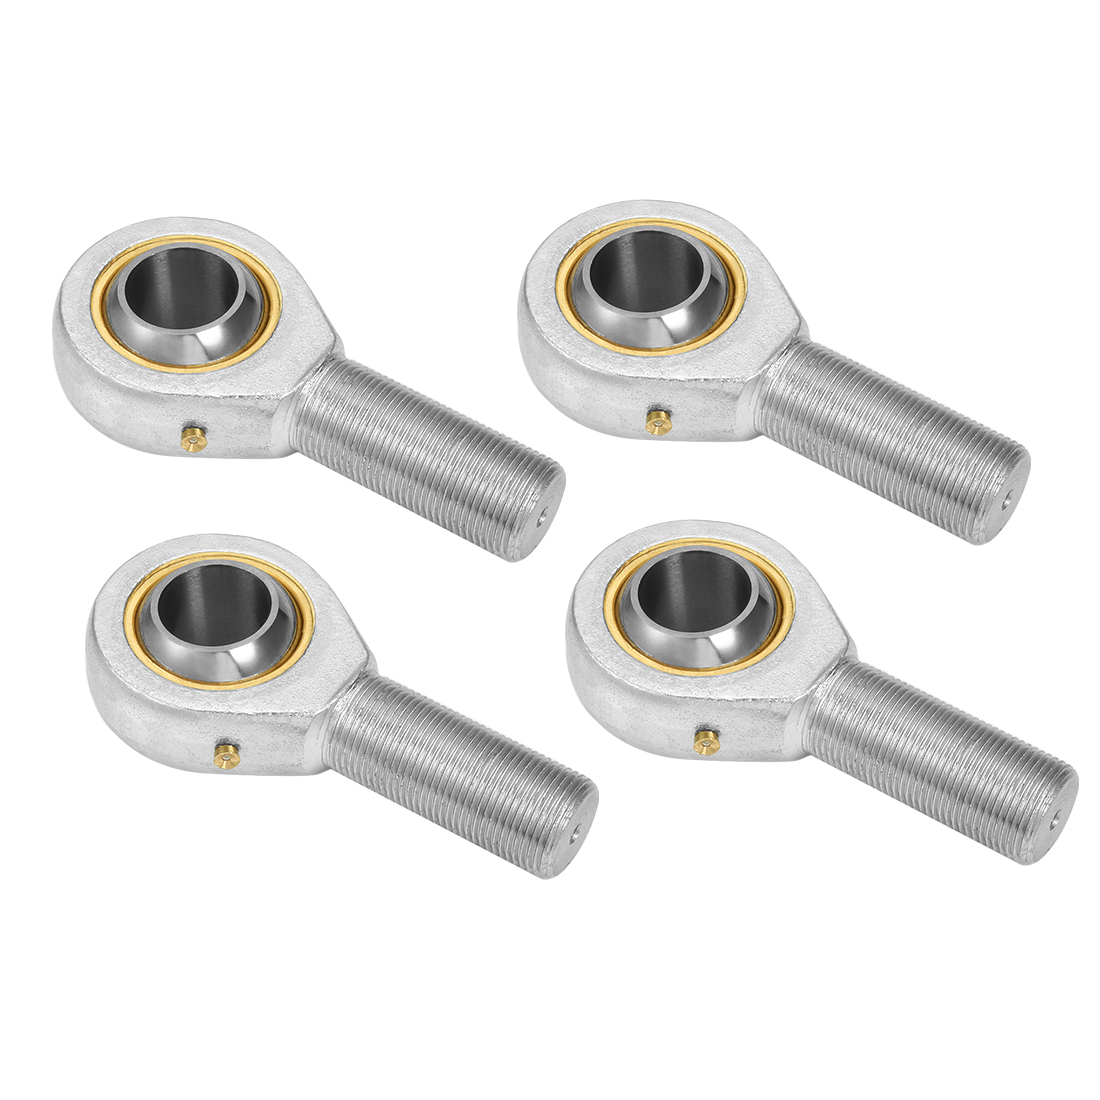 POS8 8mm Inside Dia 11.6KN Economy Male Right Hand Rod End Bearing 4pcs